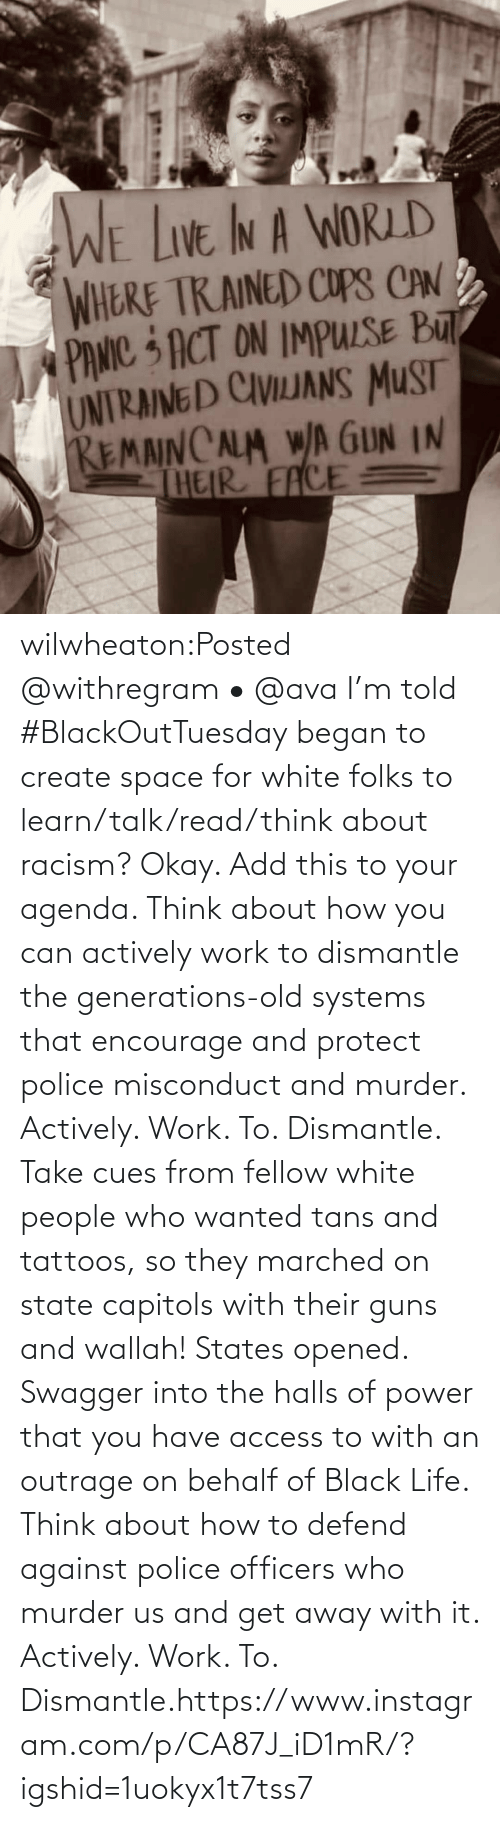 Your: wilwheaton:Posted @withregram • @ava I'm told #BlackOutTuesday began to create space for white folks to learn/talk/read/think about racism? Okay. Add this to your agenda. Think about how you can actively work to dismantle the generations-old systems that encourage and protect police misconduct and murder. Actively. Work. To. Dismantle. Take cues from fellow white people who wanted tans and tattoos, so they marched on state capitols with their guns and wallah! States opened. Swagger into the halls of power that you have access to with an outrage on behalf of Black Life. Think about how to defend against police officers who murder us and get away with it. Actively. Work. To. Dismantle.https://www.instagram.com/p/CA87J_iD1mR/?igshid=1uokyx1t7tss7